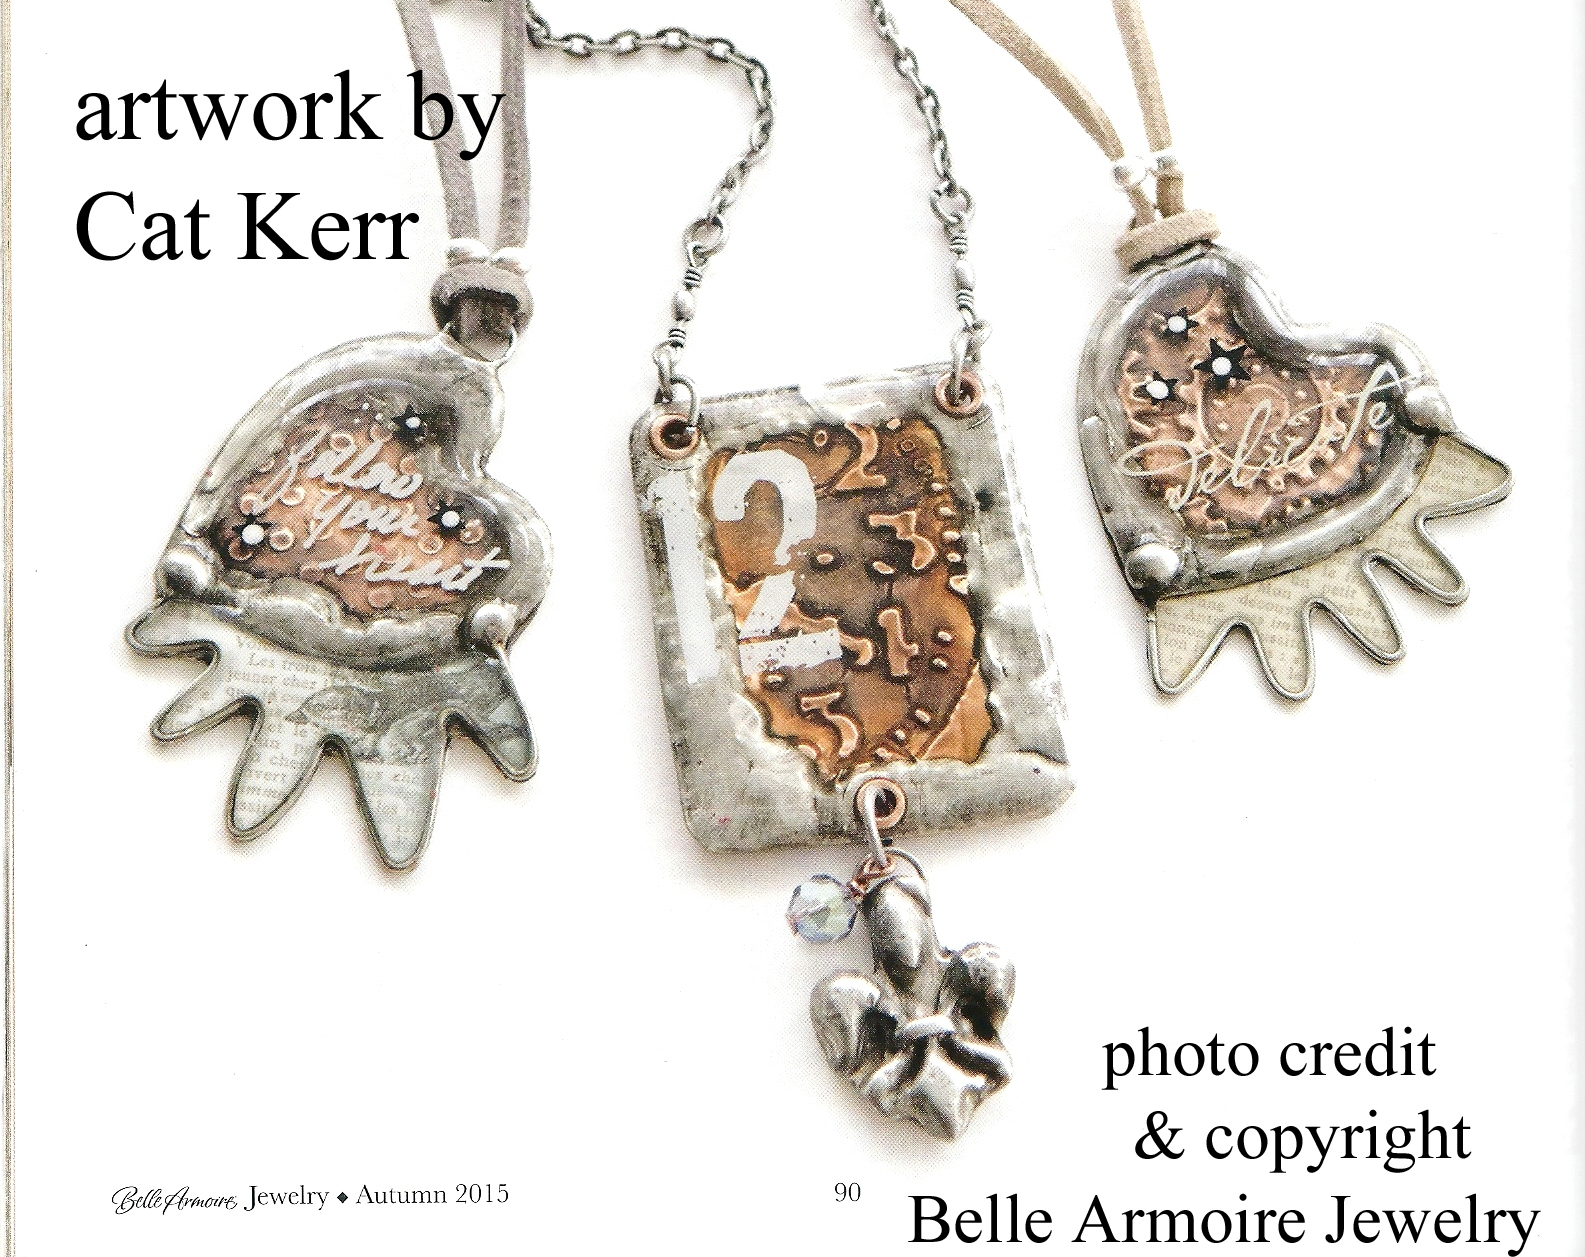 Katalina Jewelry Giveaway Belle Armoire Jewelry Autumn 2015